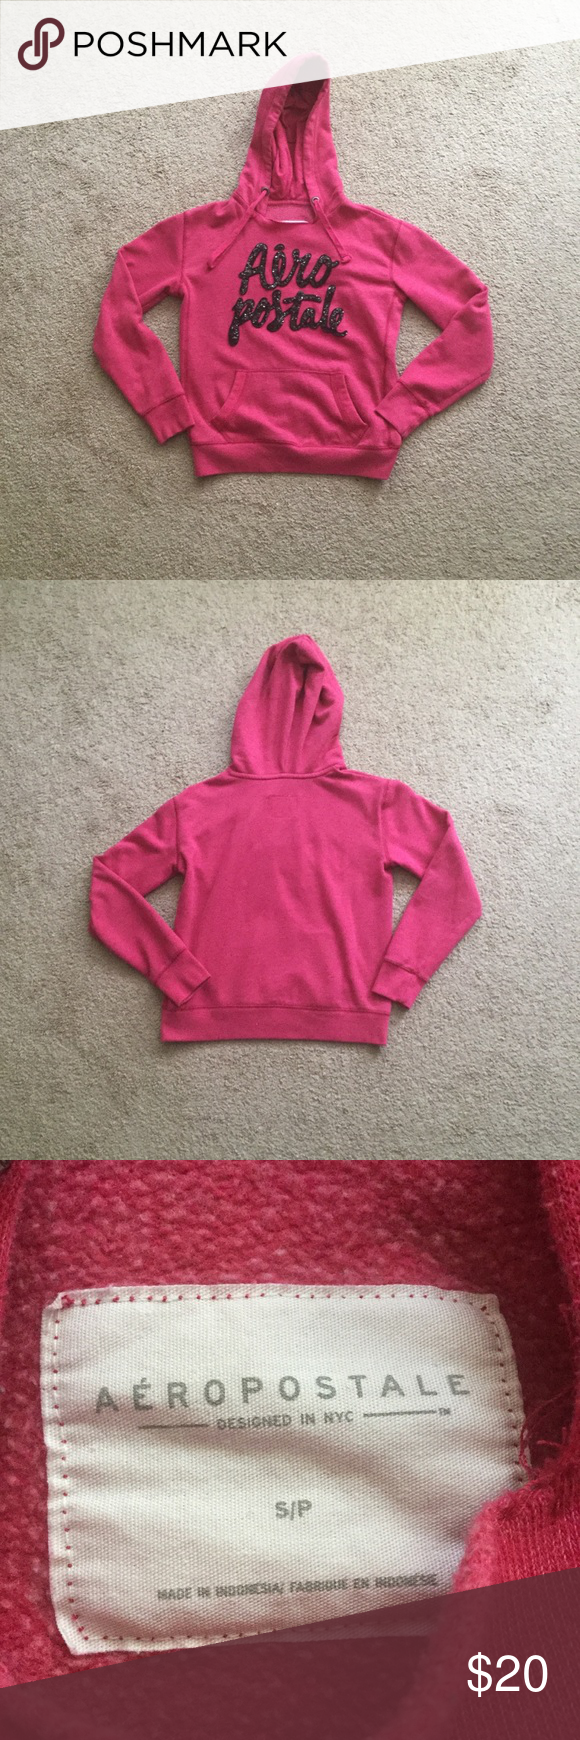 Aeropostale Women's Hoodie ⭐️Worn Lightly But In Amazing